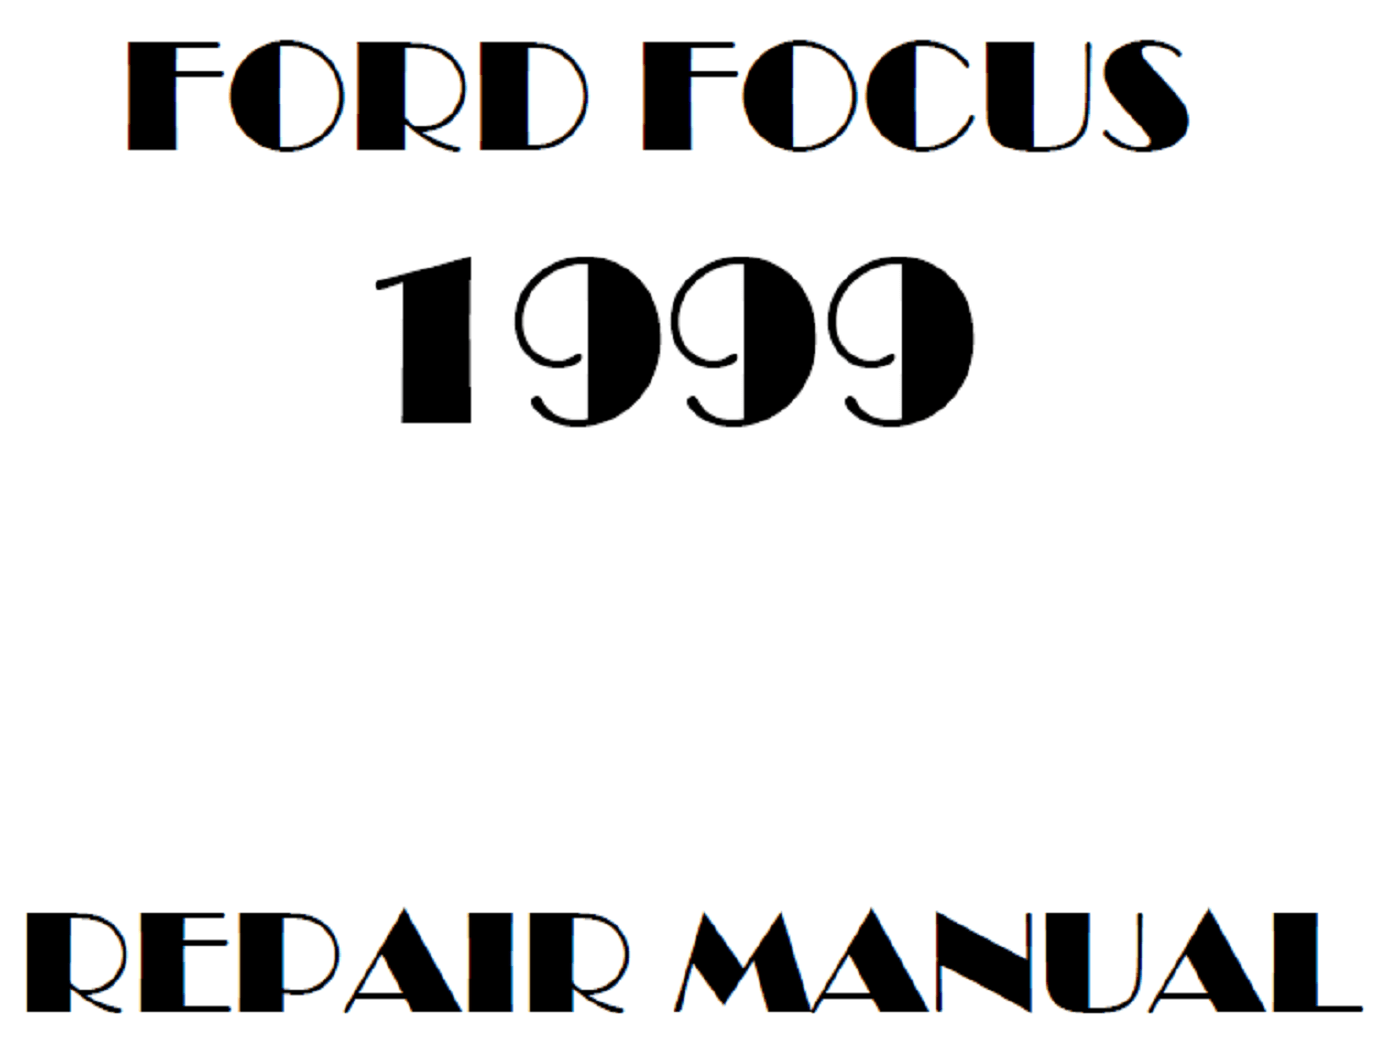 1999 Ford Focus repair manual